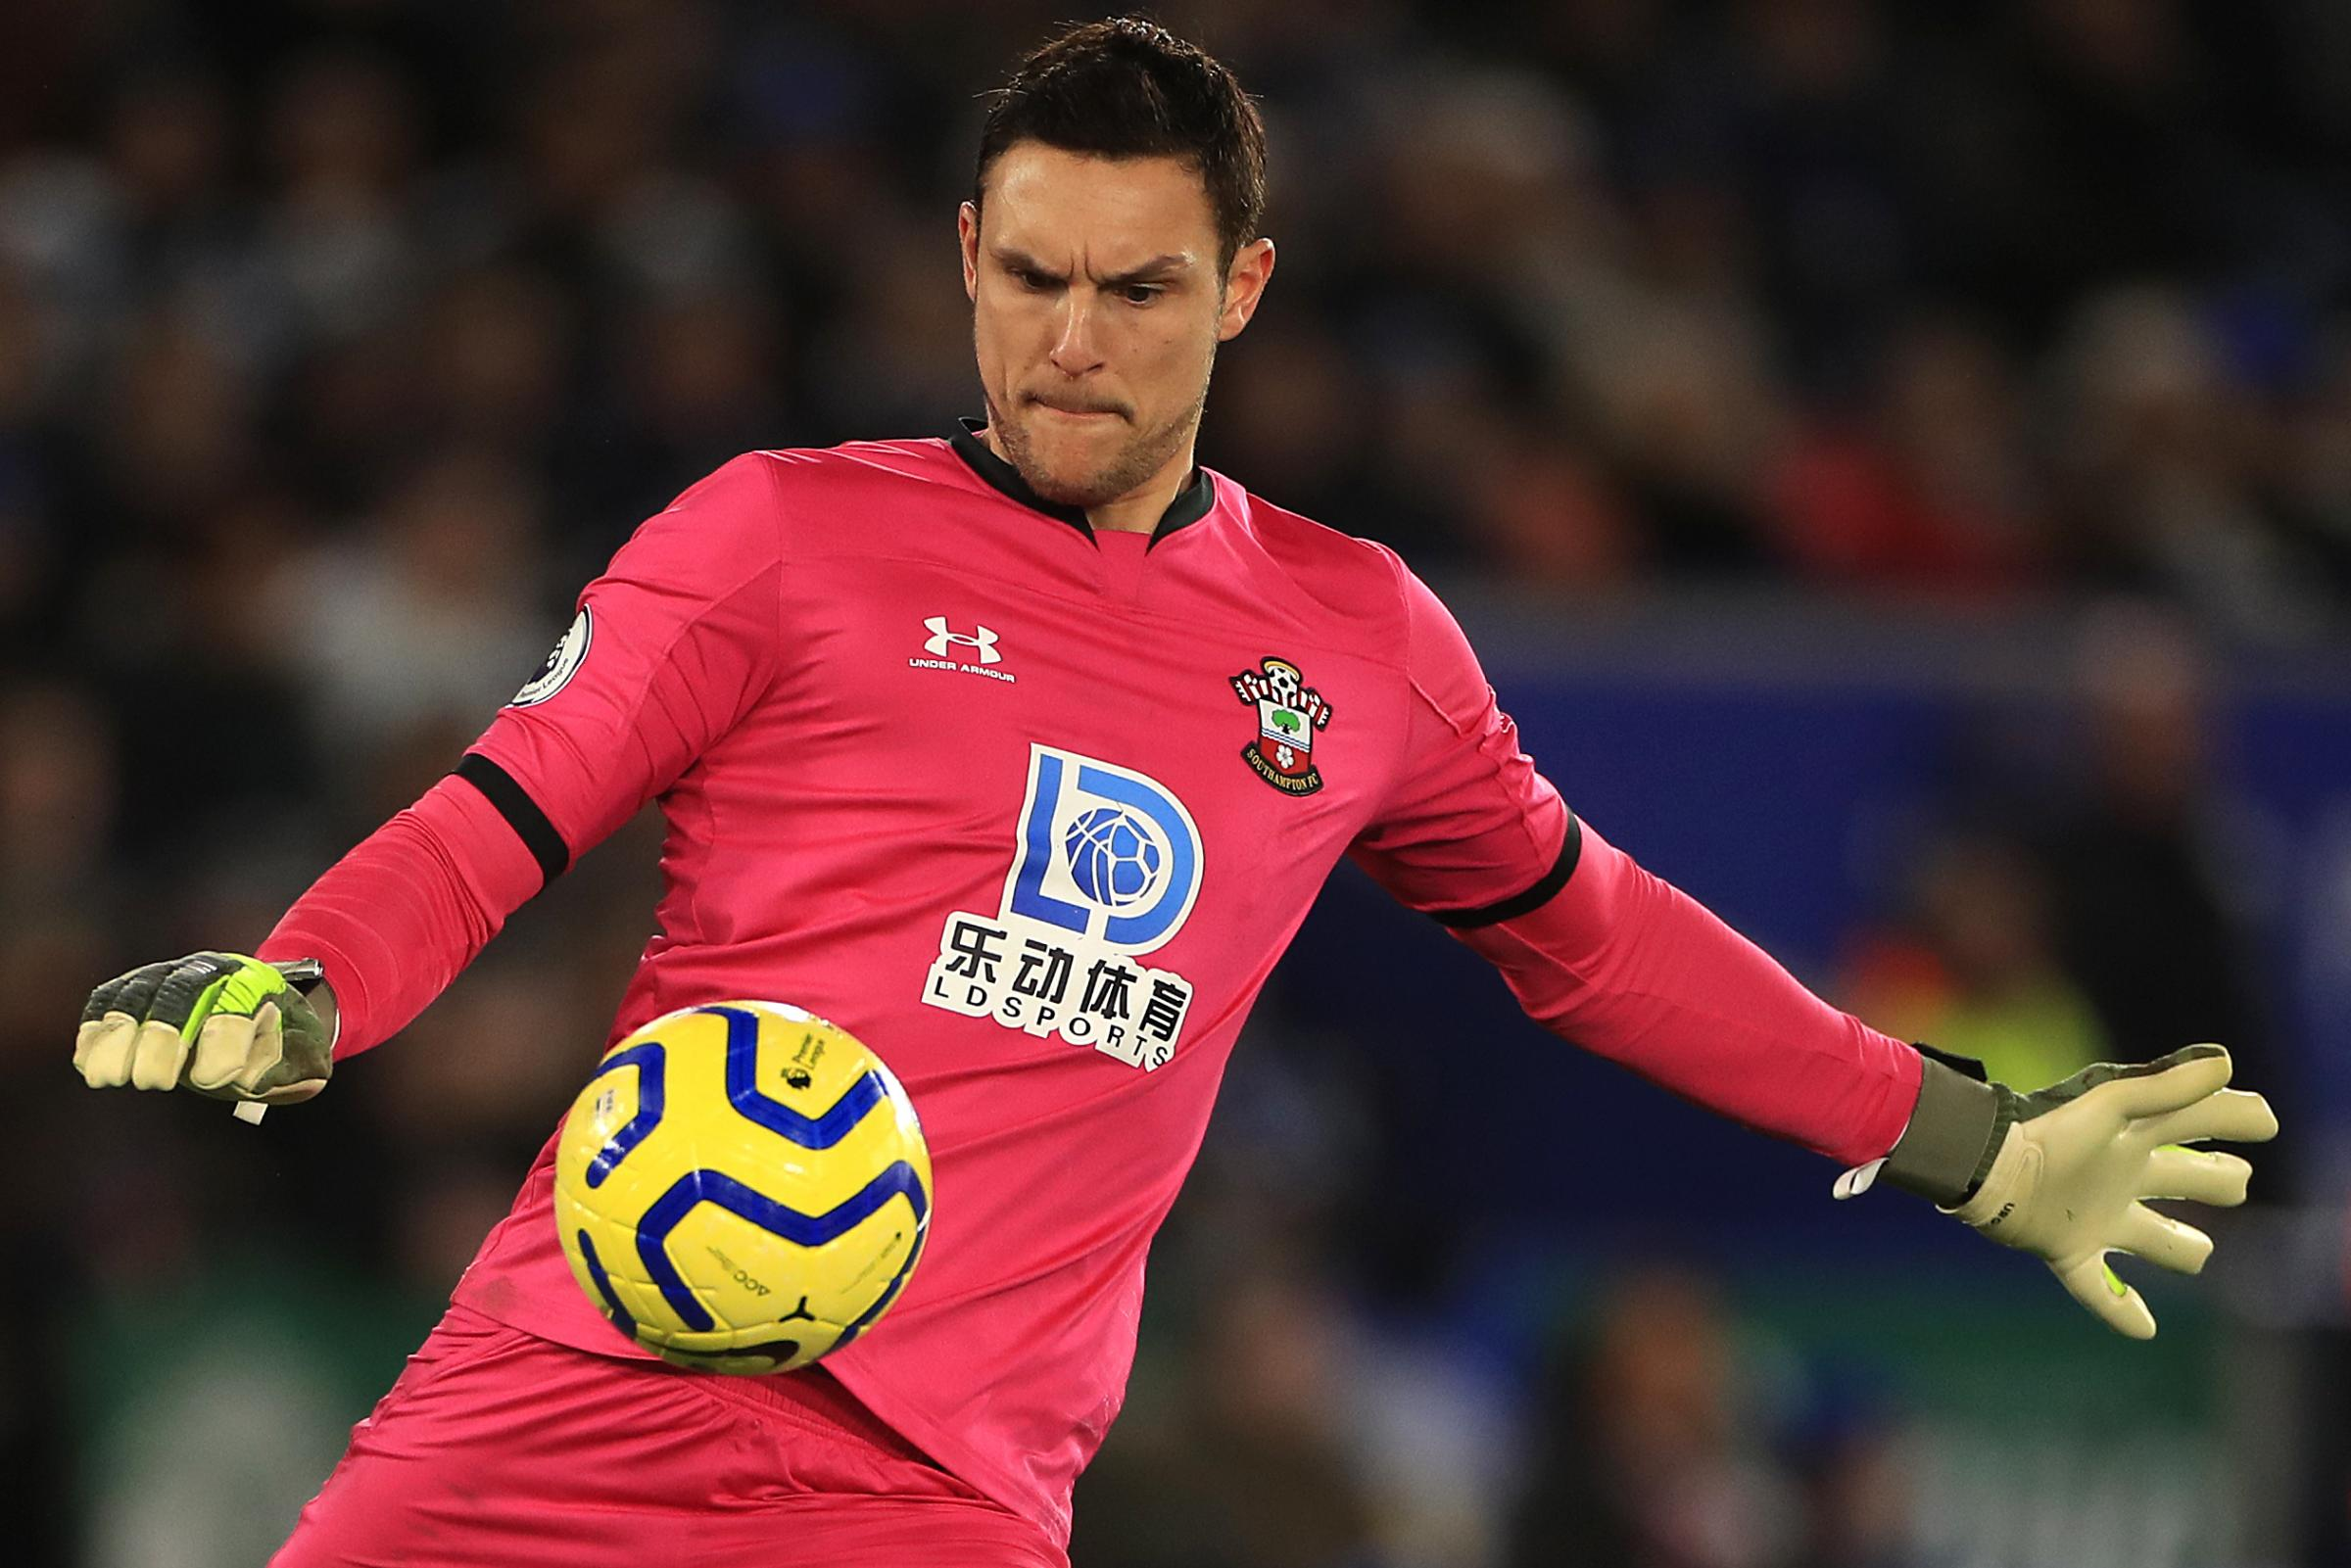 Southampton goalkeeper Alex McCarthy reveals his save of the season so far